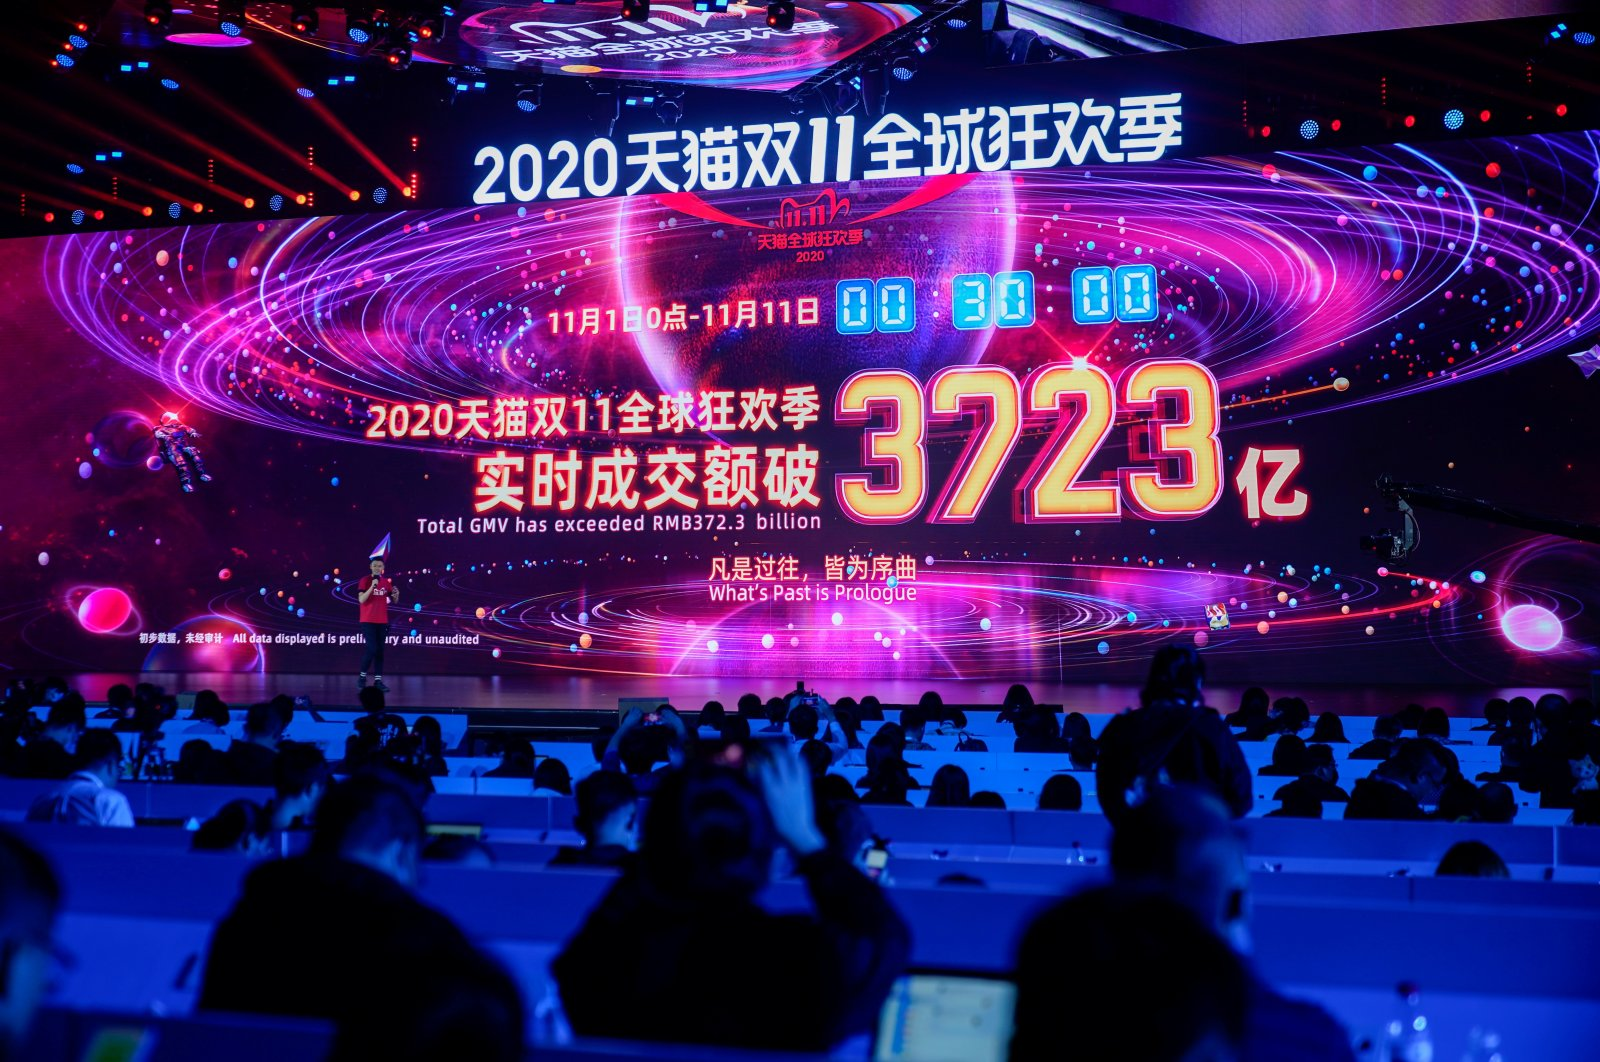 A screen shows the value of goods being transacted during Alibaba Group's Singles' Day global shopping festival at a media center in Hangzhou, Zhejiang province, China, Nov. 11, 2020. (Reuters Photo)